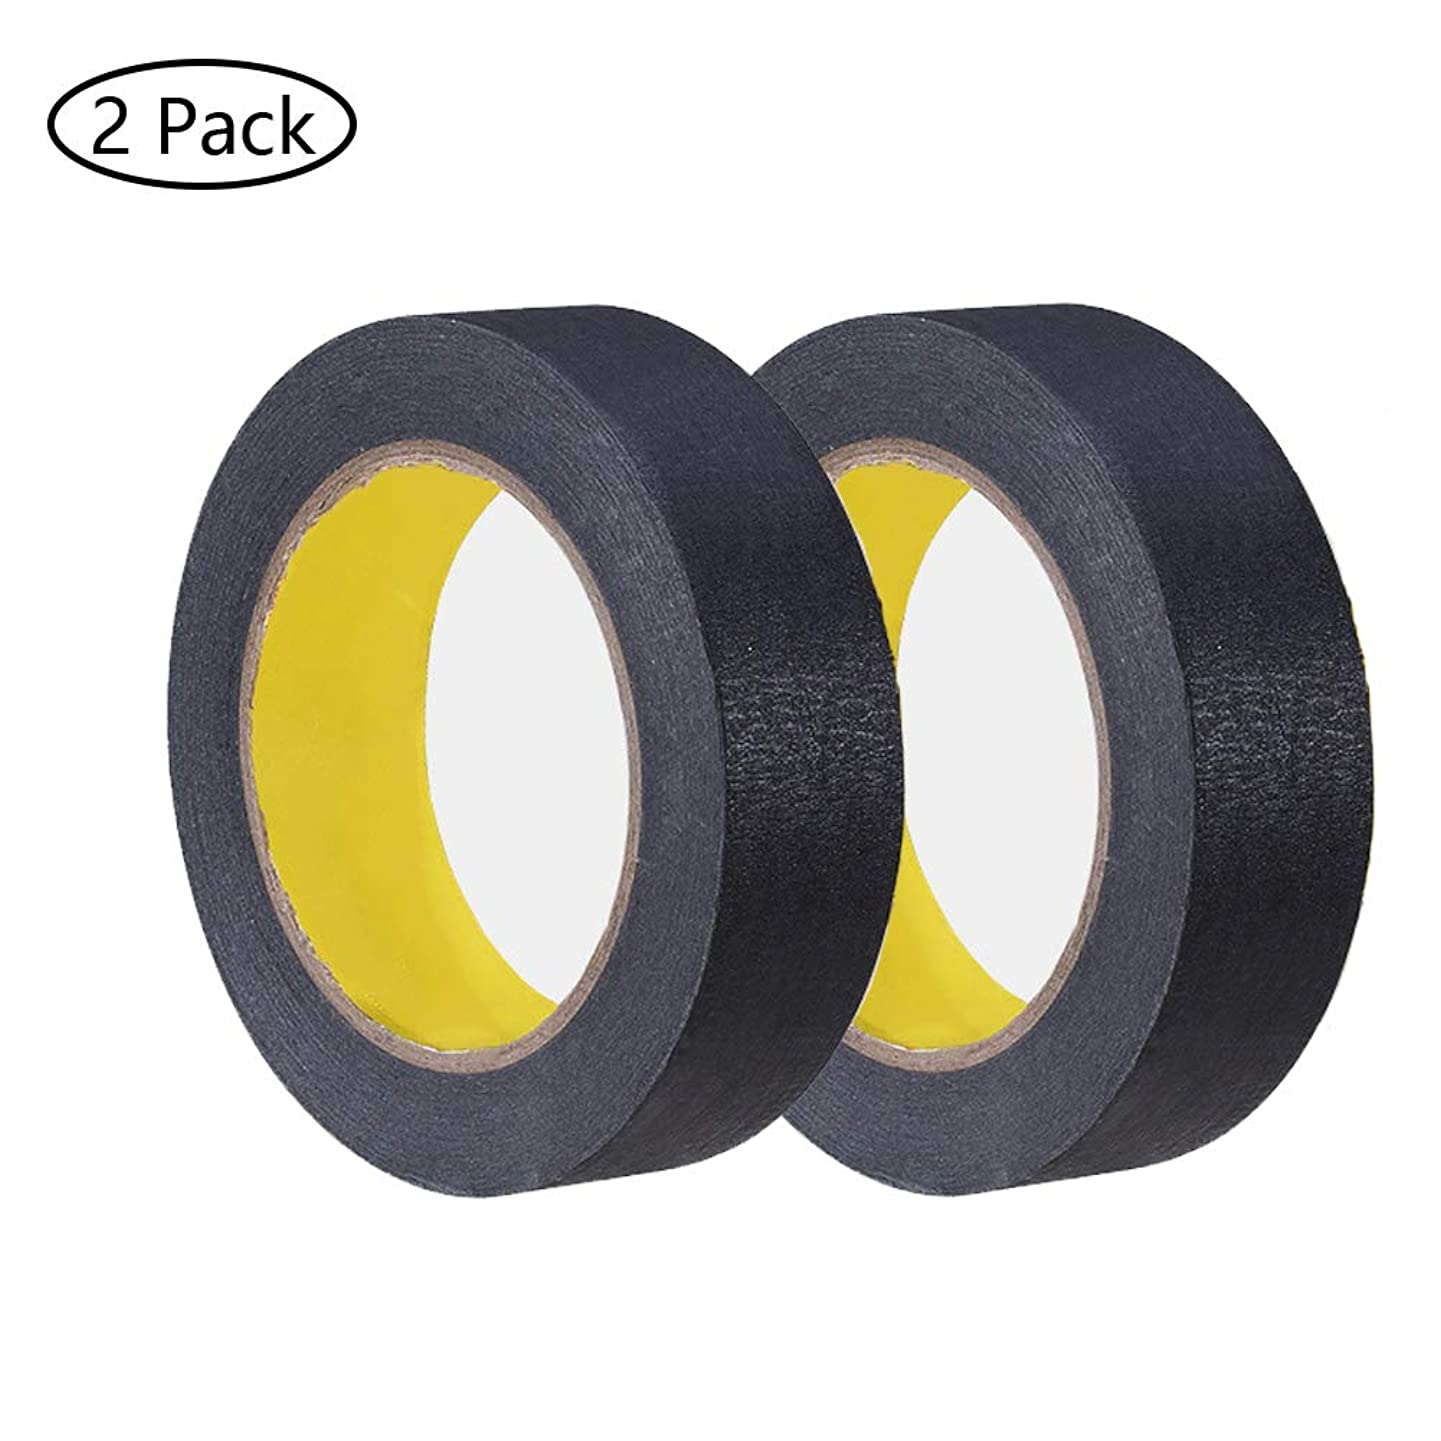 Painters Tape, 2 Pack 1.18 inch / 30mm 60yd Multi Surface Blue Painters Tape Masking Tape Easy Removal Leaves No Adhesive Residue